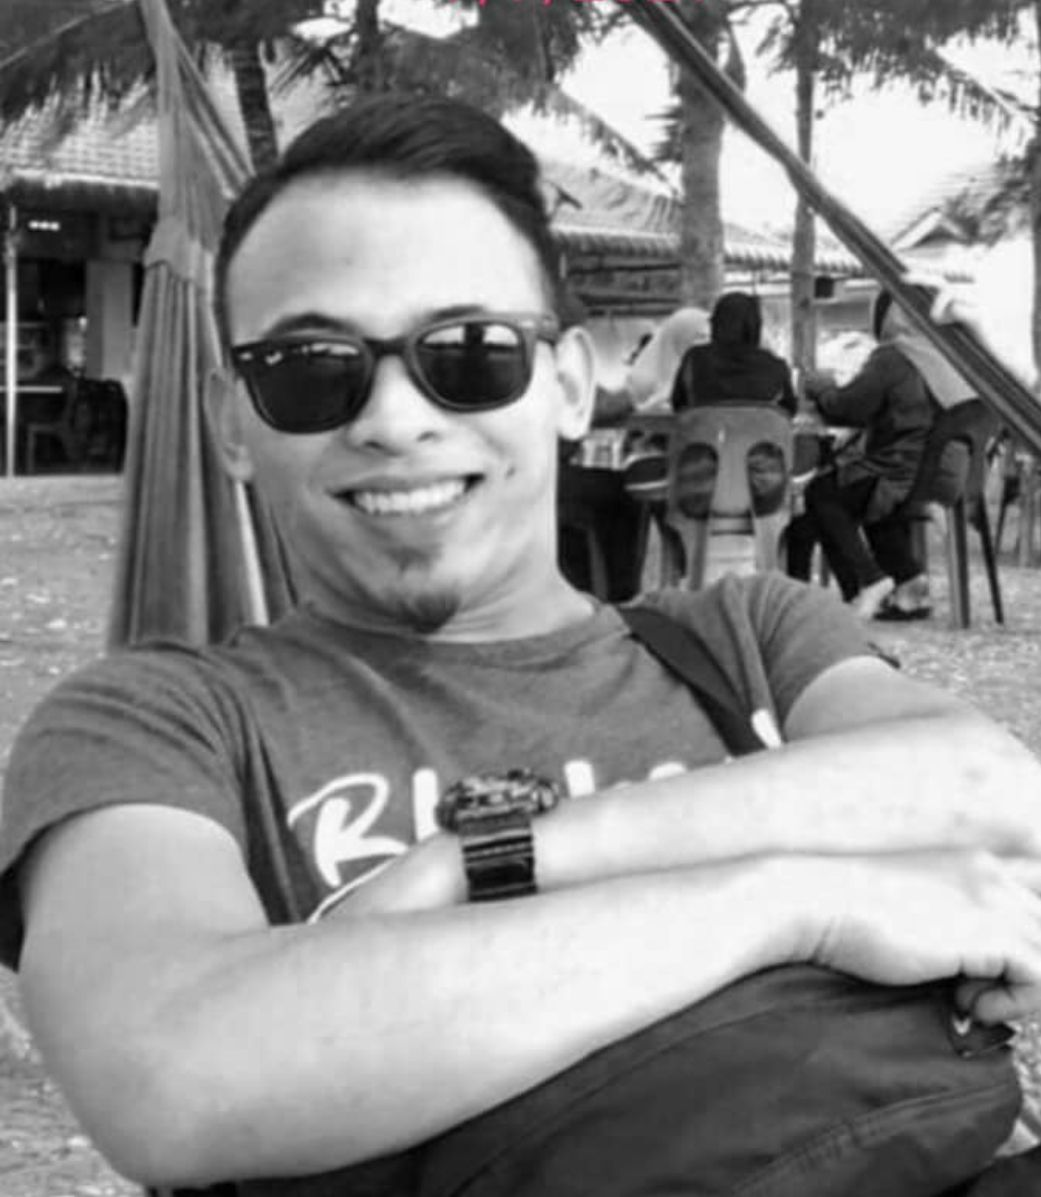 Nor Isna Shukri is a young man. He has a dimple when he smiles, a goatee and side swept hair. He is wearing sunglasse.